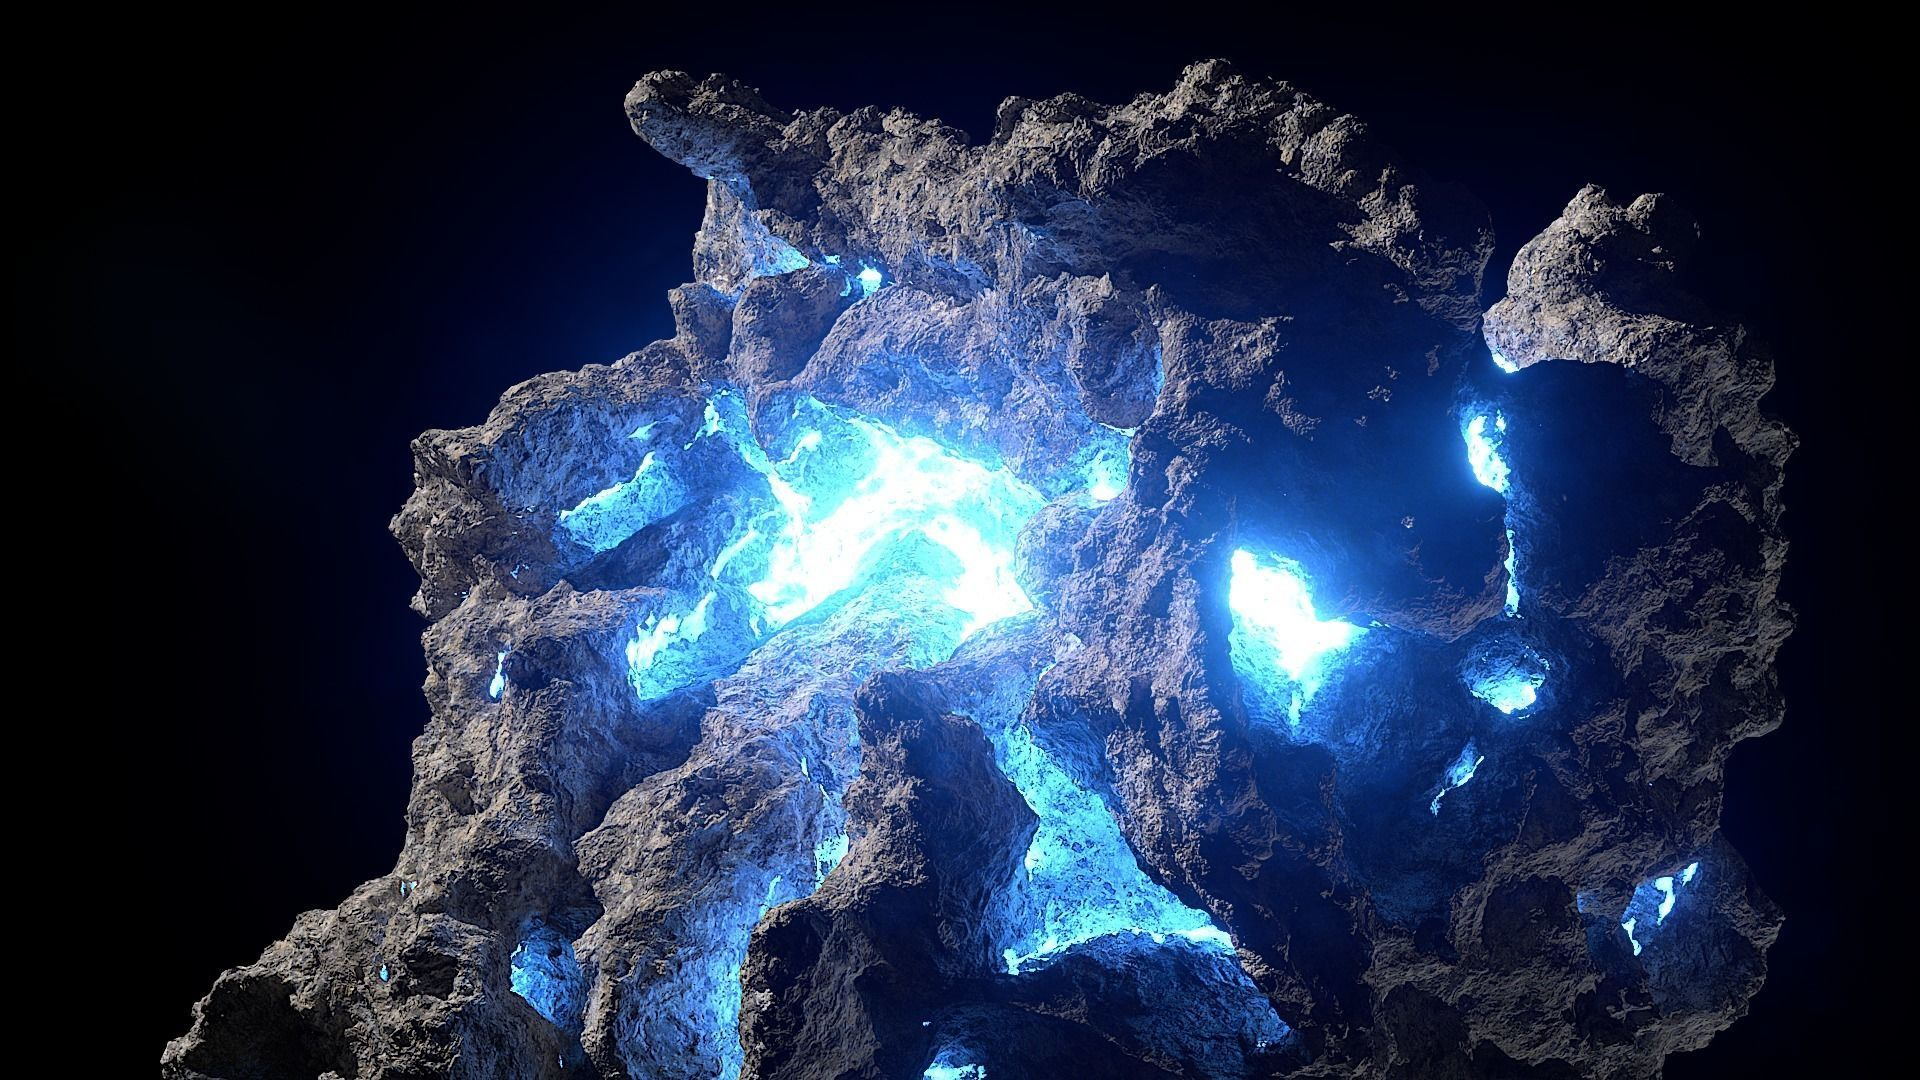 HighRes Asteroids Pack for Production